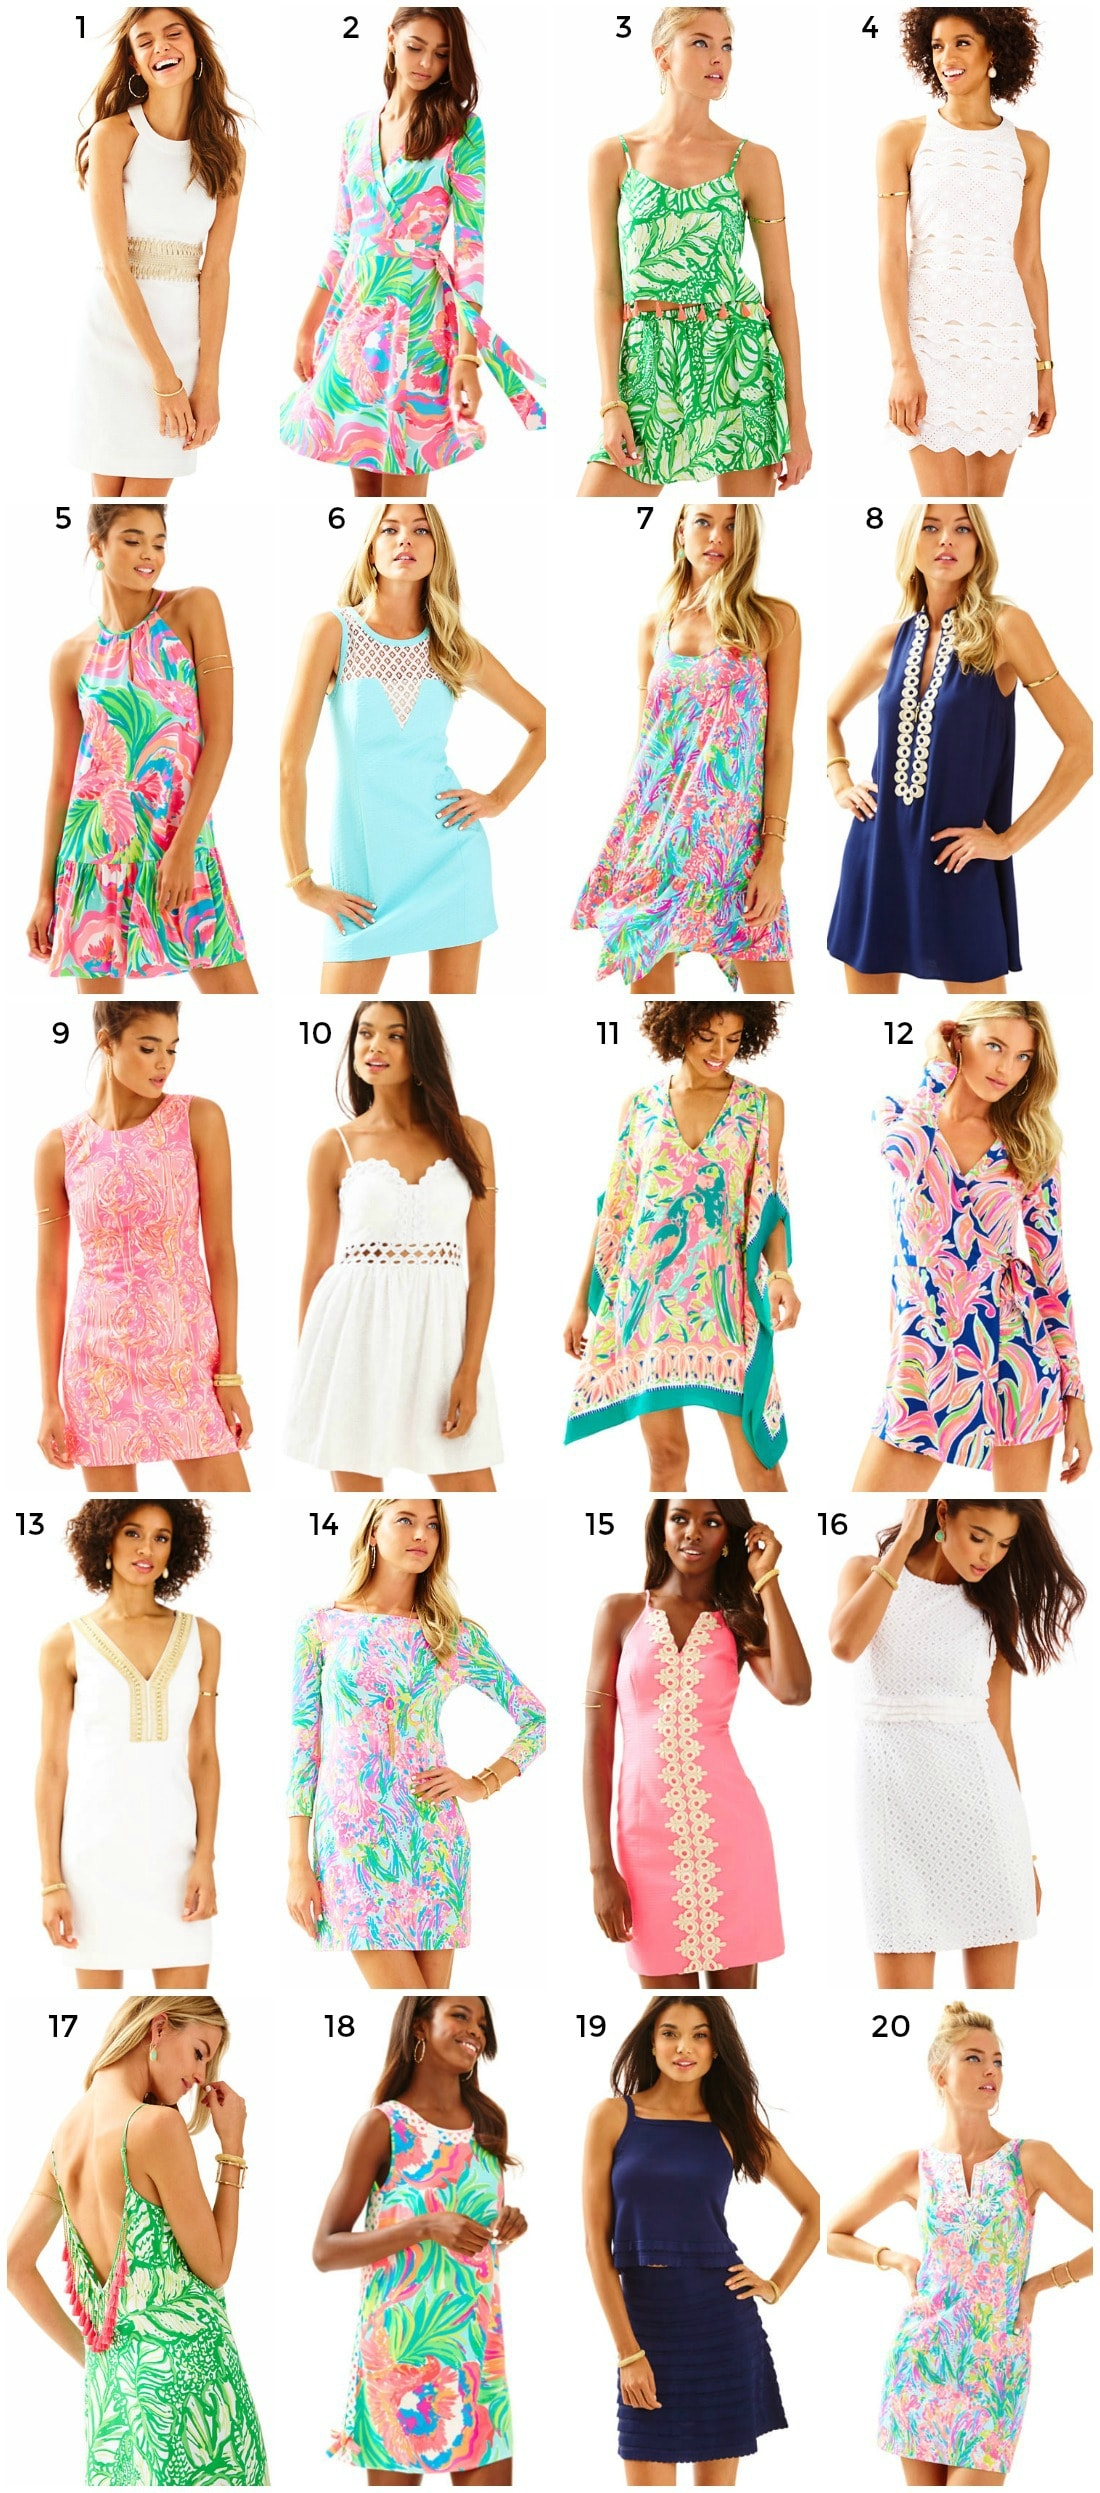 45a1fbdff08 Lilly Pulitzer Spring Collection + New Arrivals + Cutest Lilly Pulitzer  Dresses